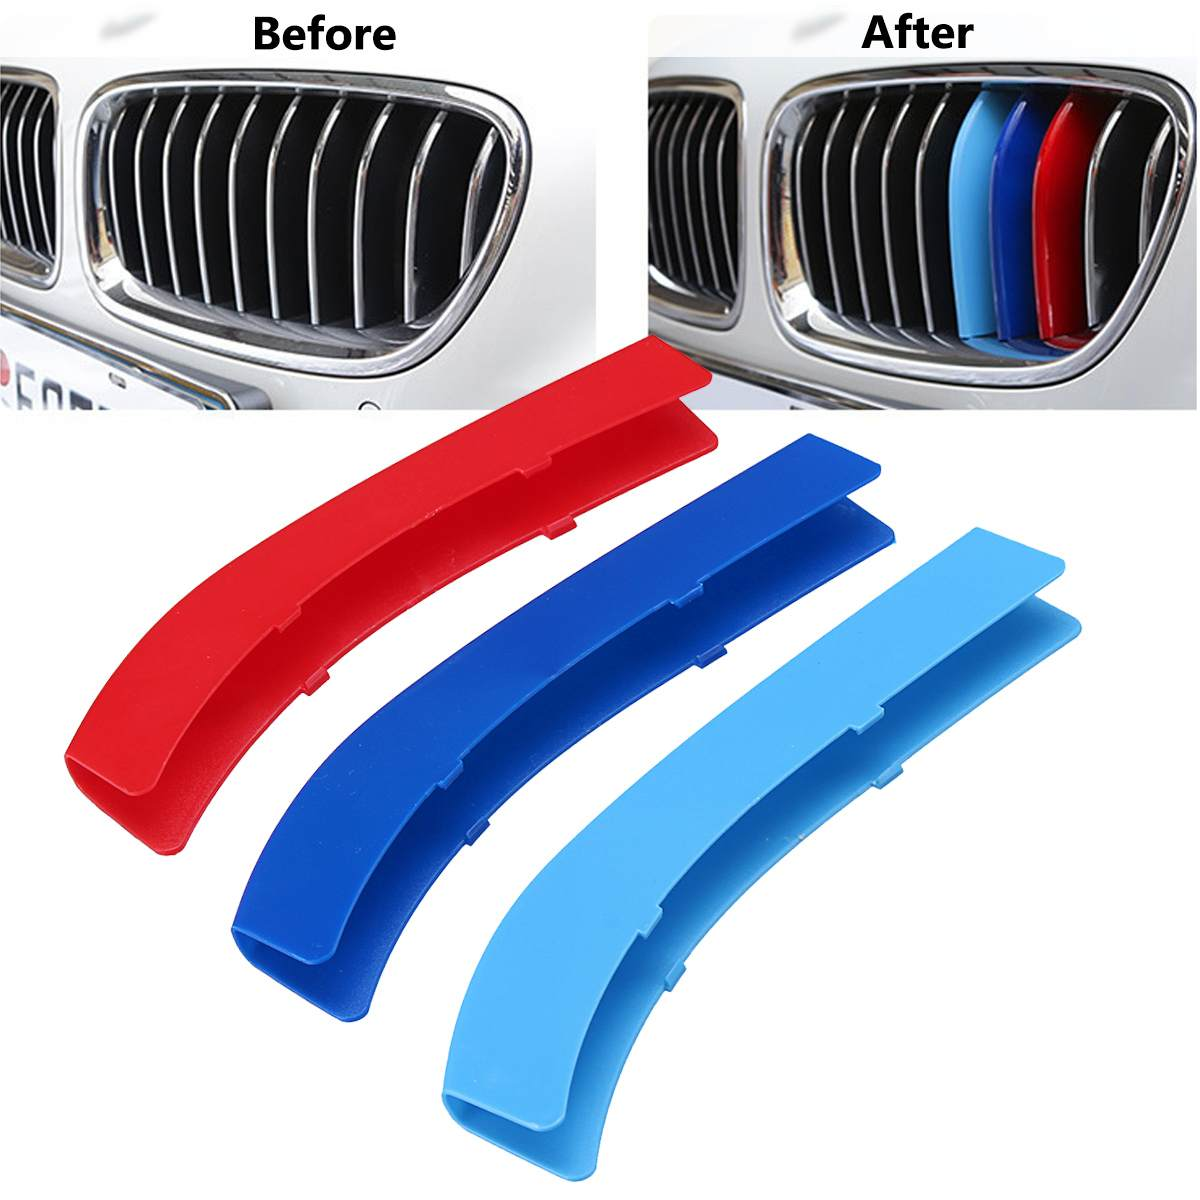 3pcs Car Grille Sticker Strip Cover Trim For BMW 1 3 5 Series F30 F31 X5 X6 E90 E91 F10 F11 F18 E60 E61 E70 E84 F48 F20 F21